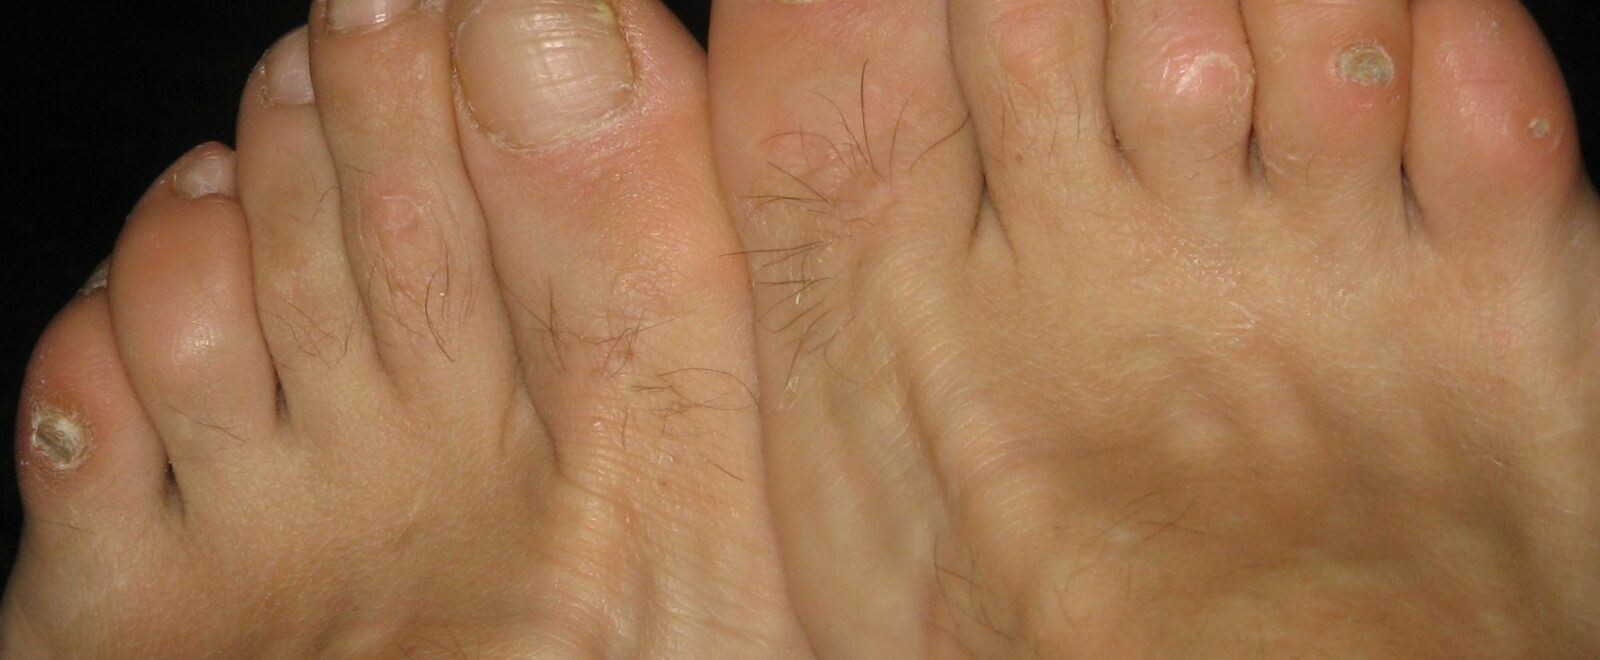 Suffer from Hard Skin on the foot?